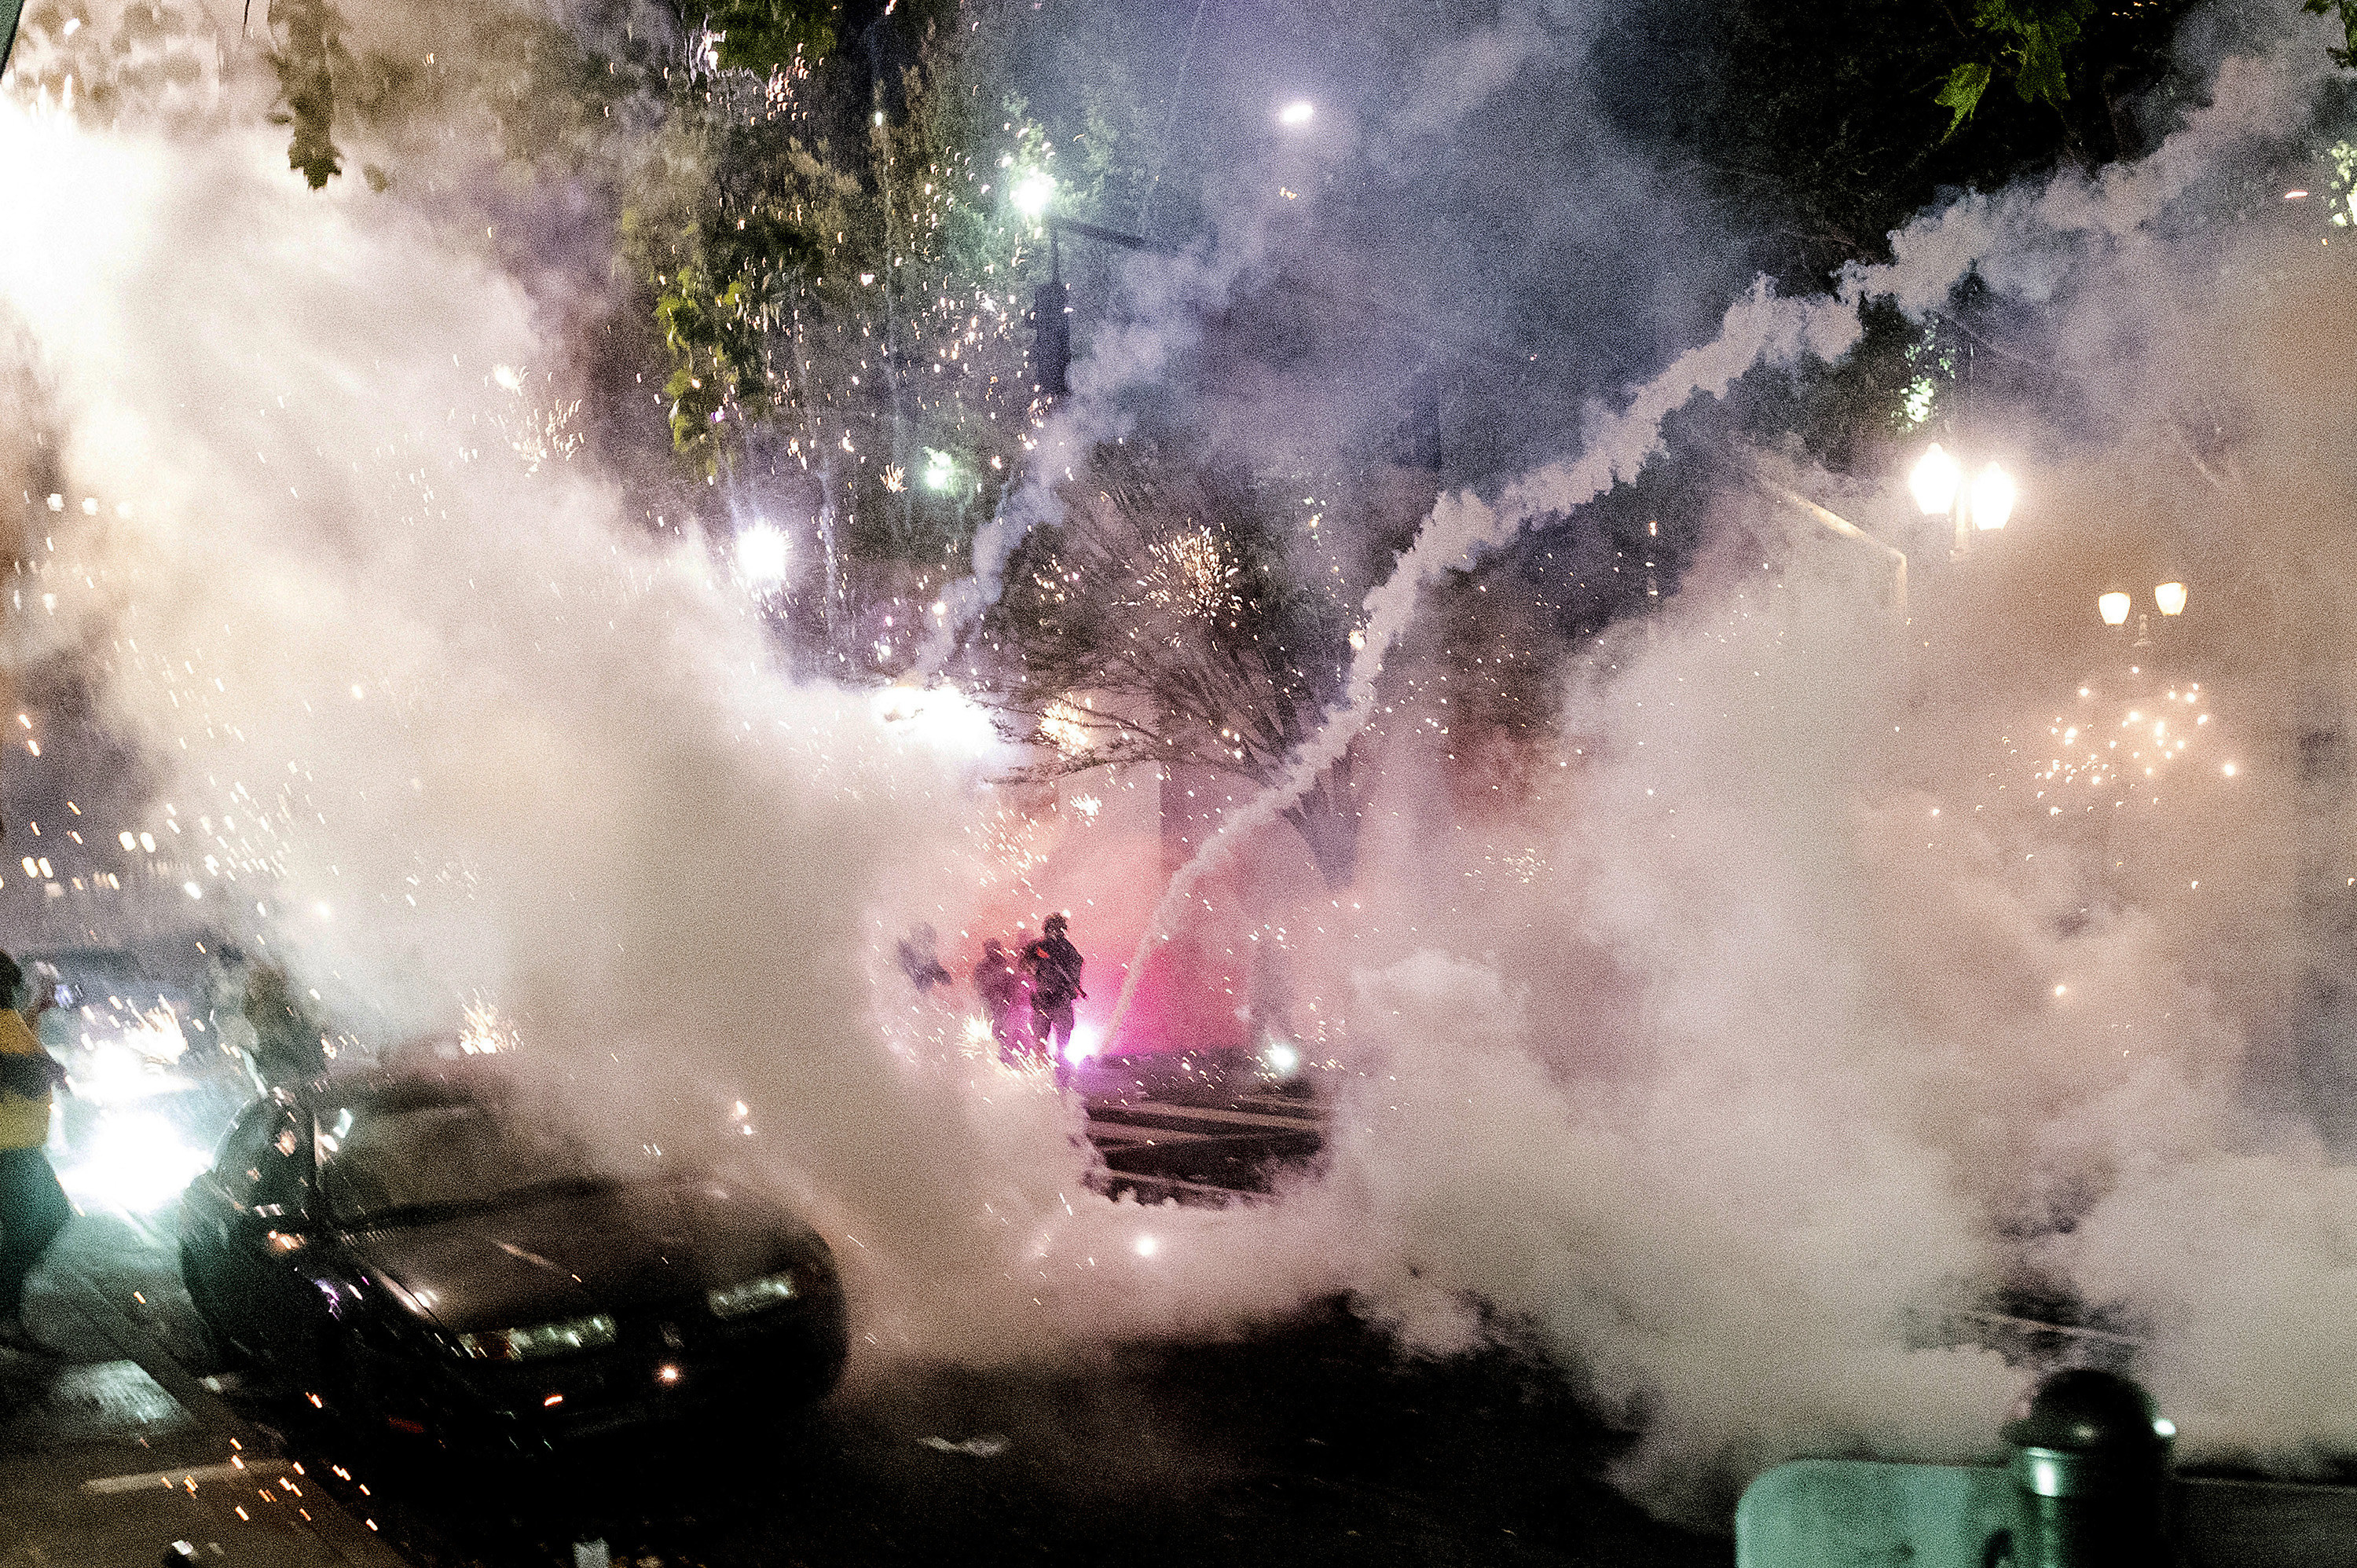 Smoke, tear gas, and sparklers fill the sky as federal officers advance to disperse protesters